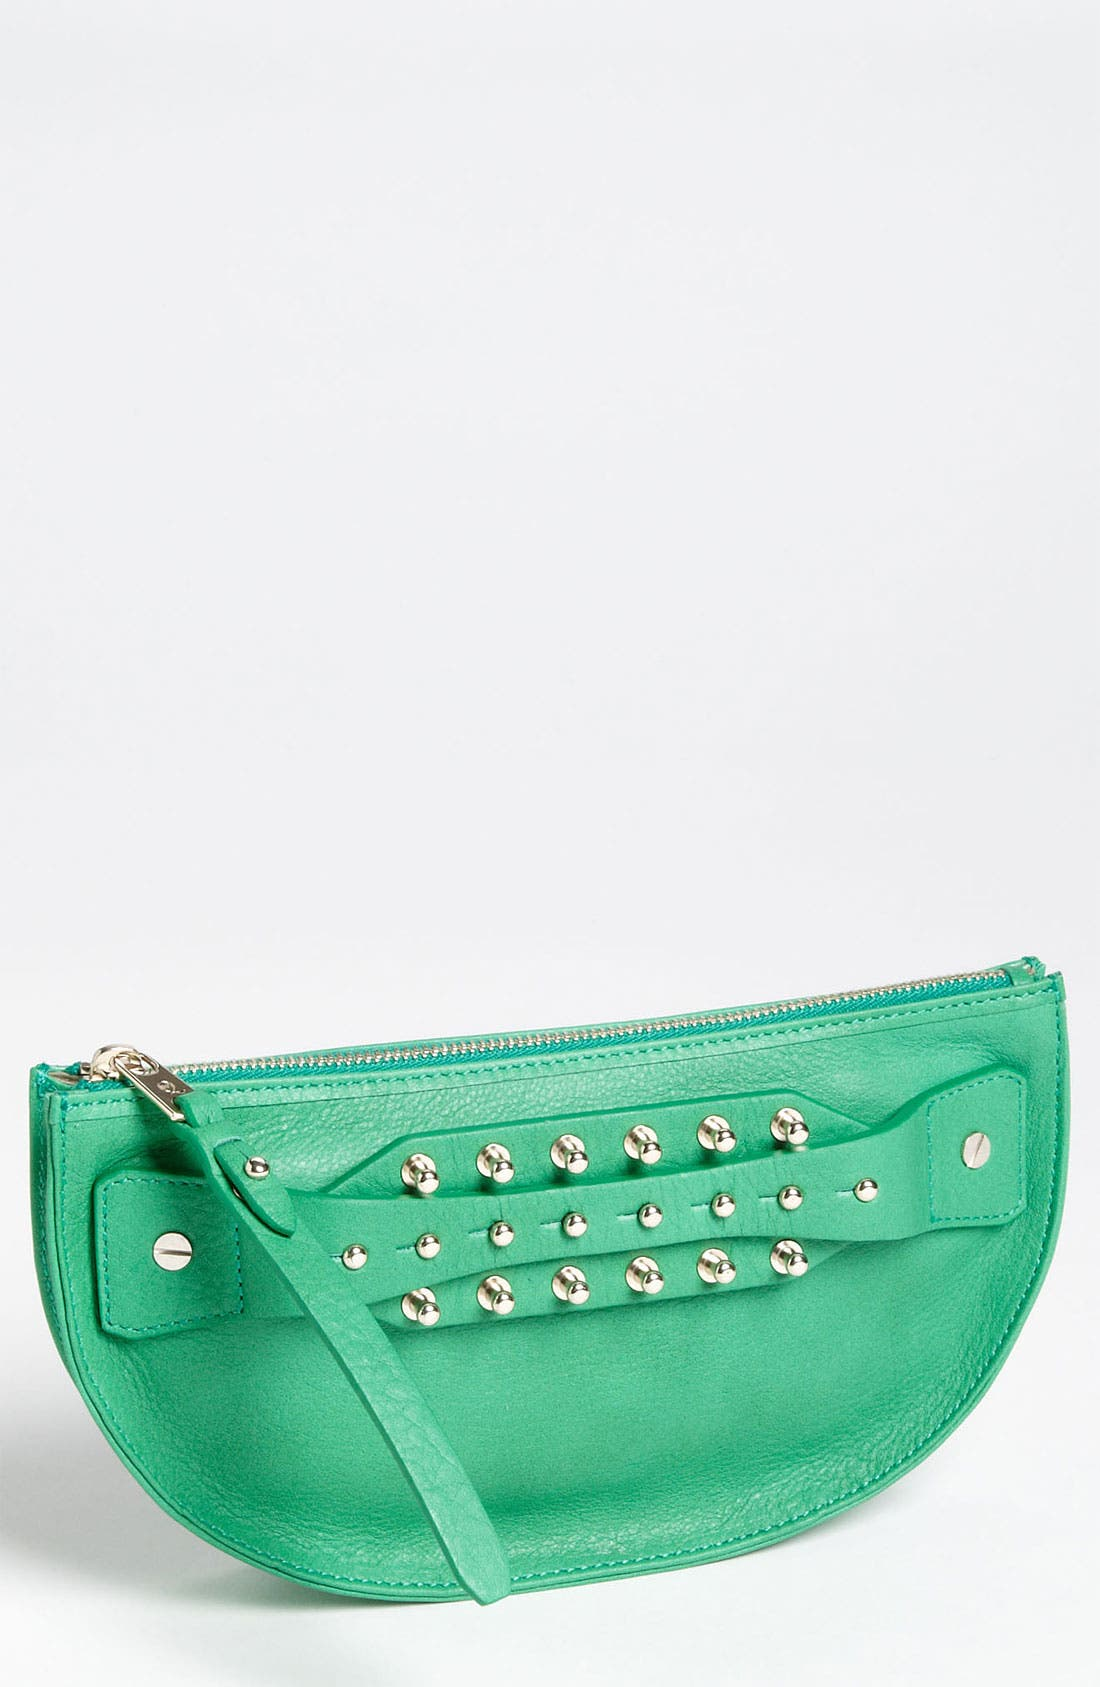 Main Image - McQ by Alexander McQueen 'Collar Stud - Mini' Clutch